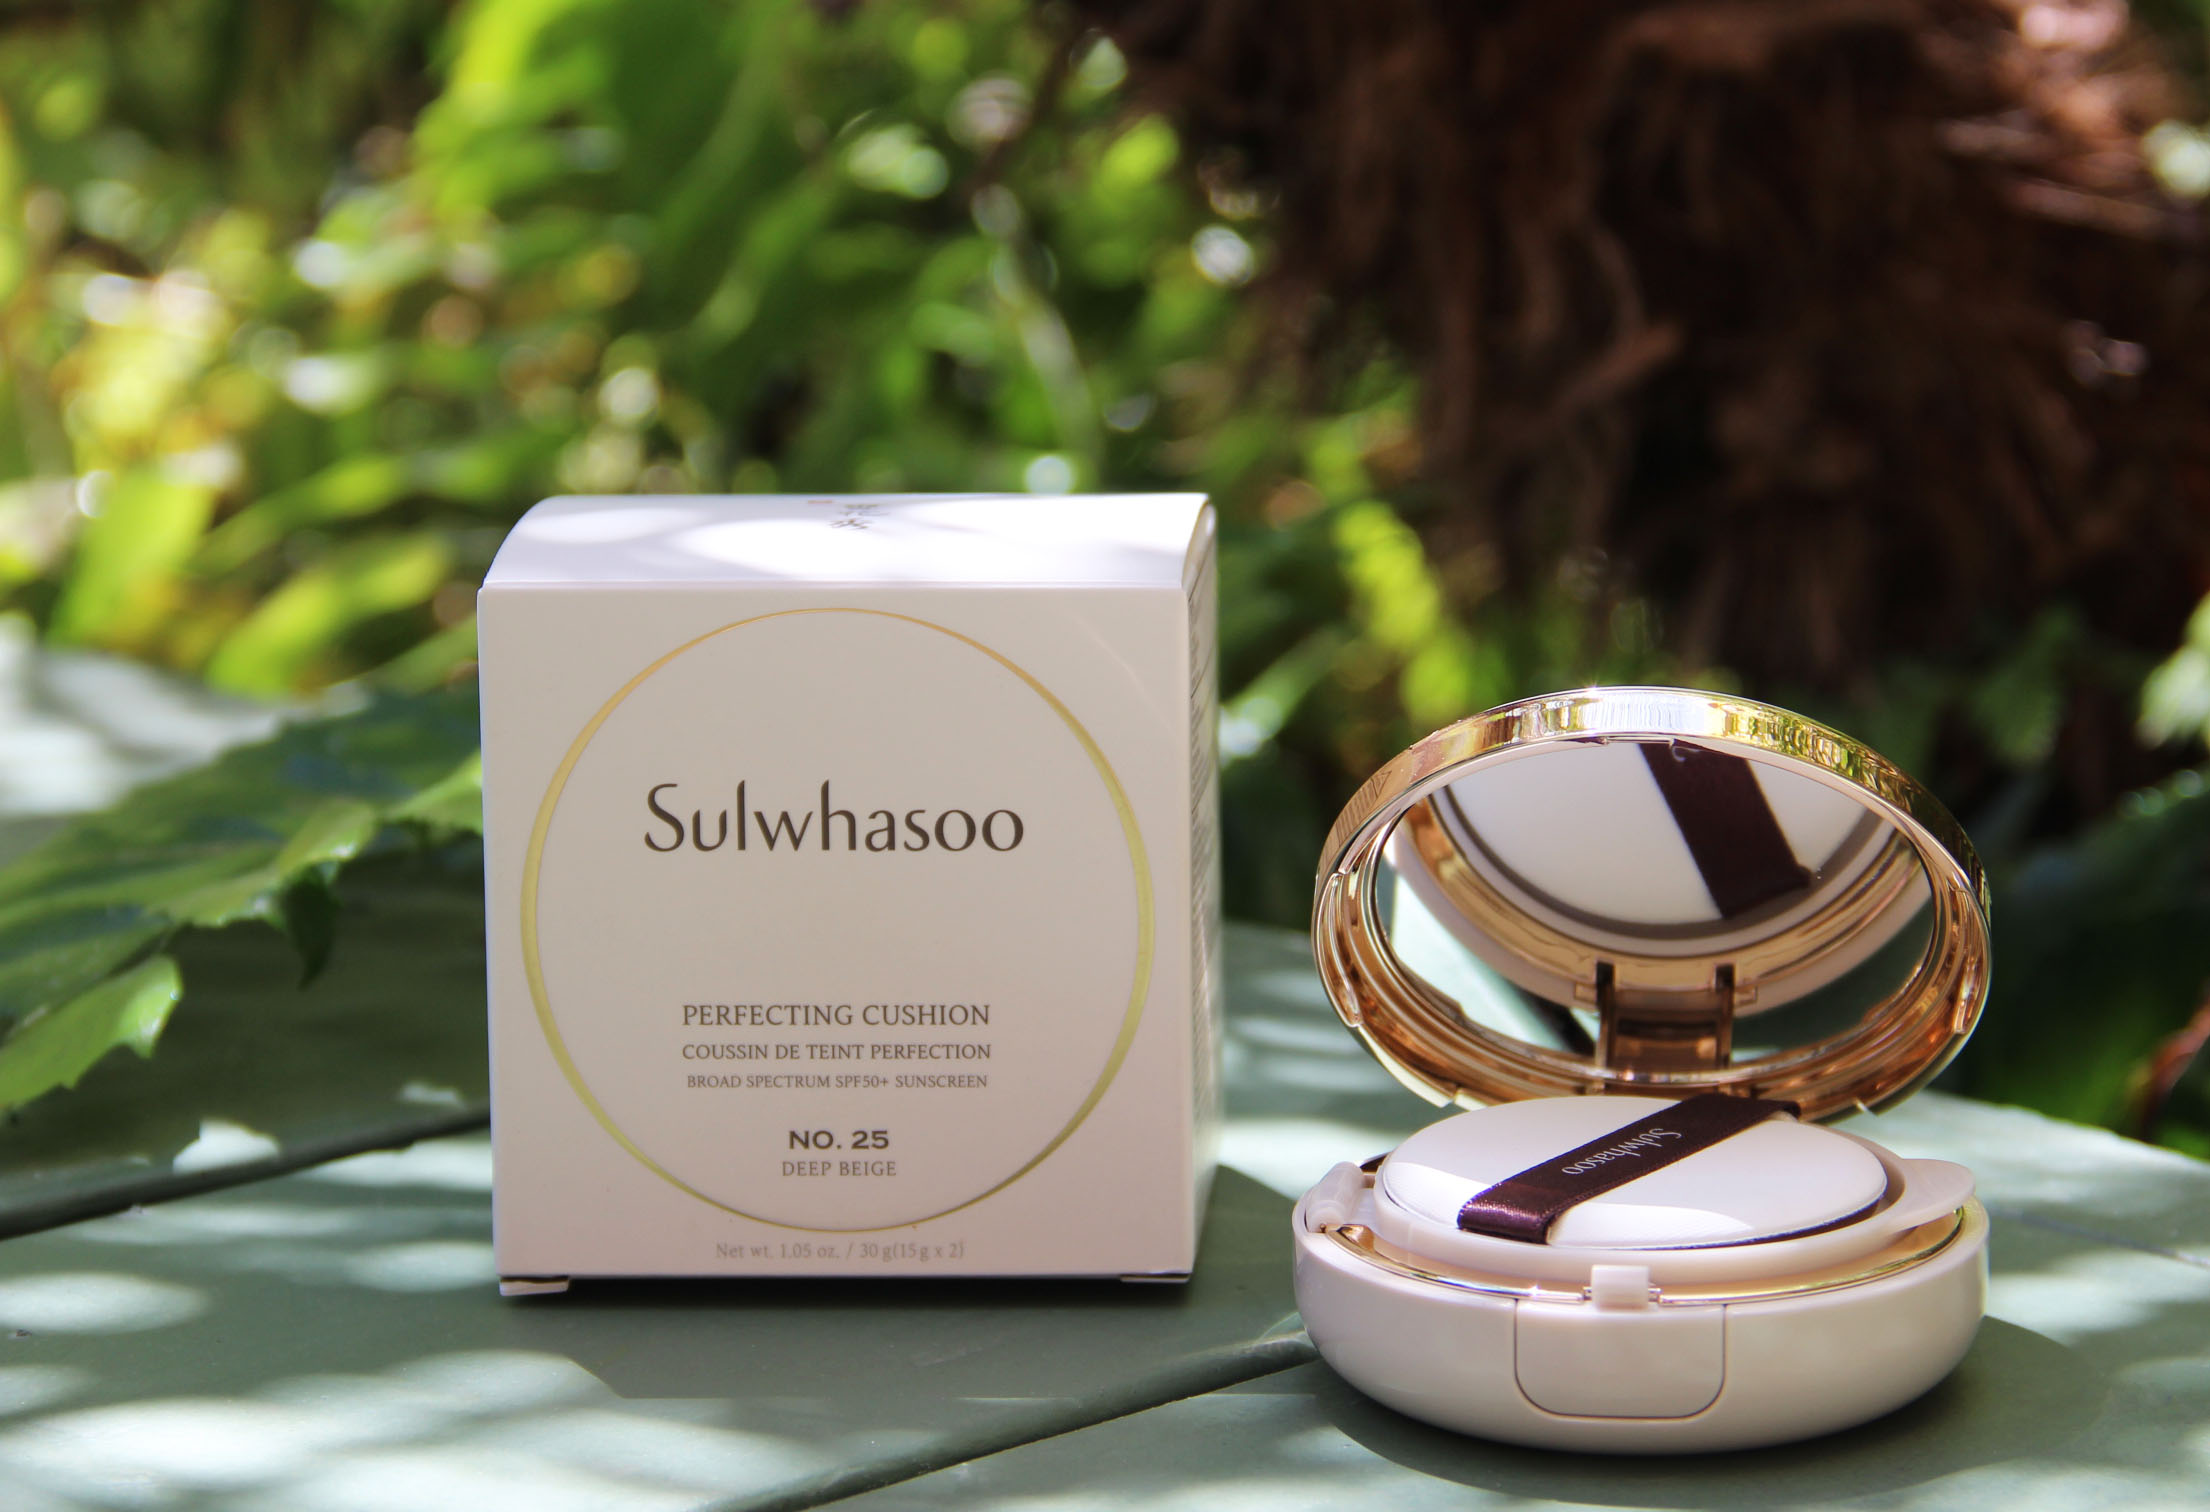 Suwhasoo Perfecting Cushion